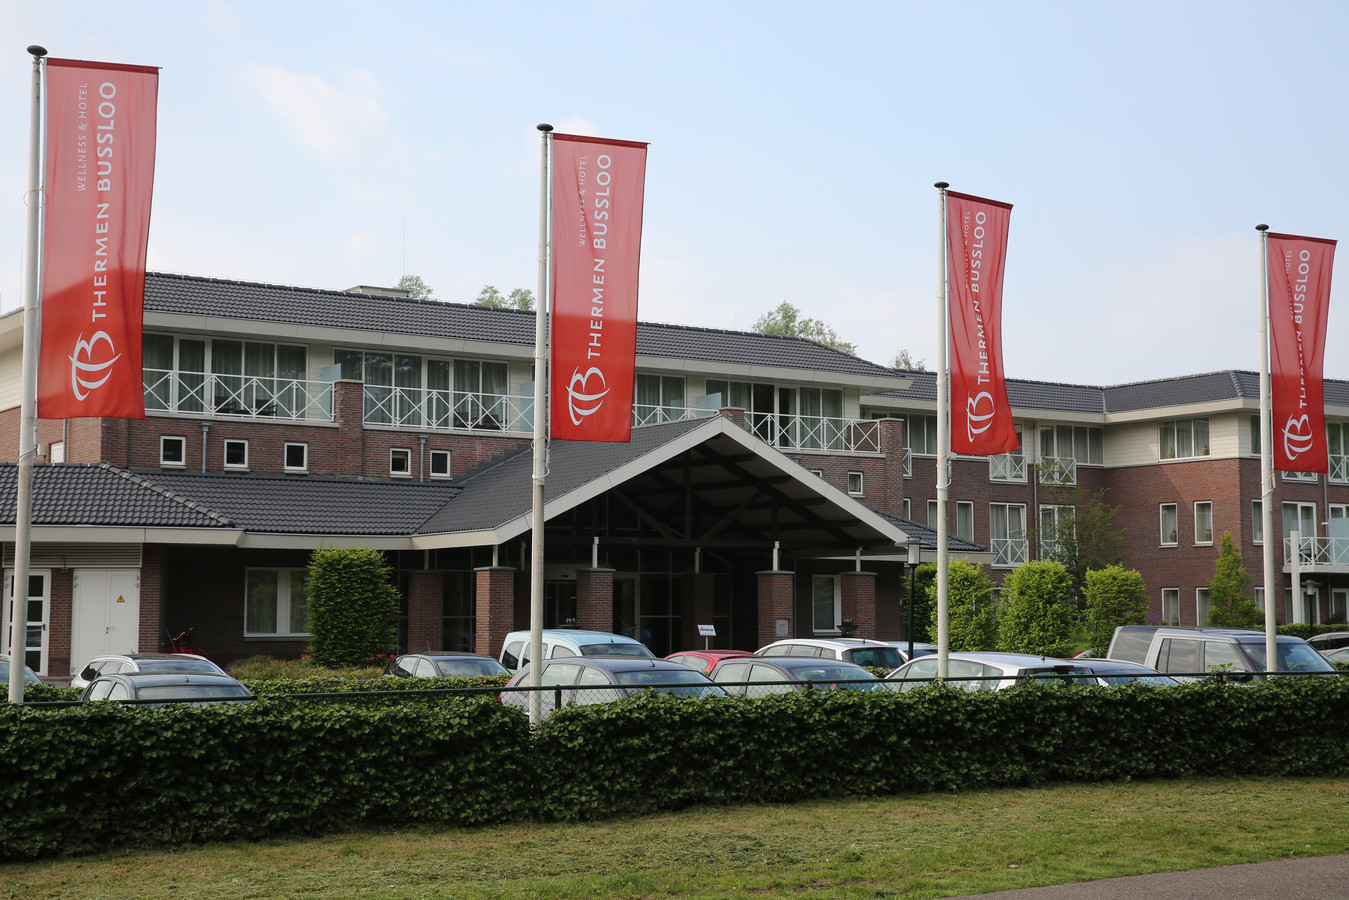 Hotel Thermen Bussloo